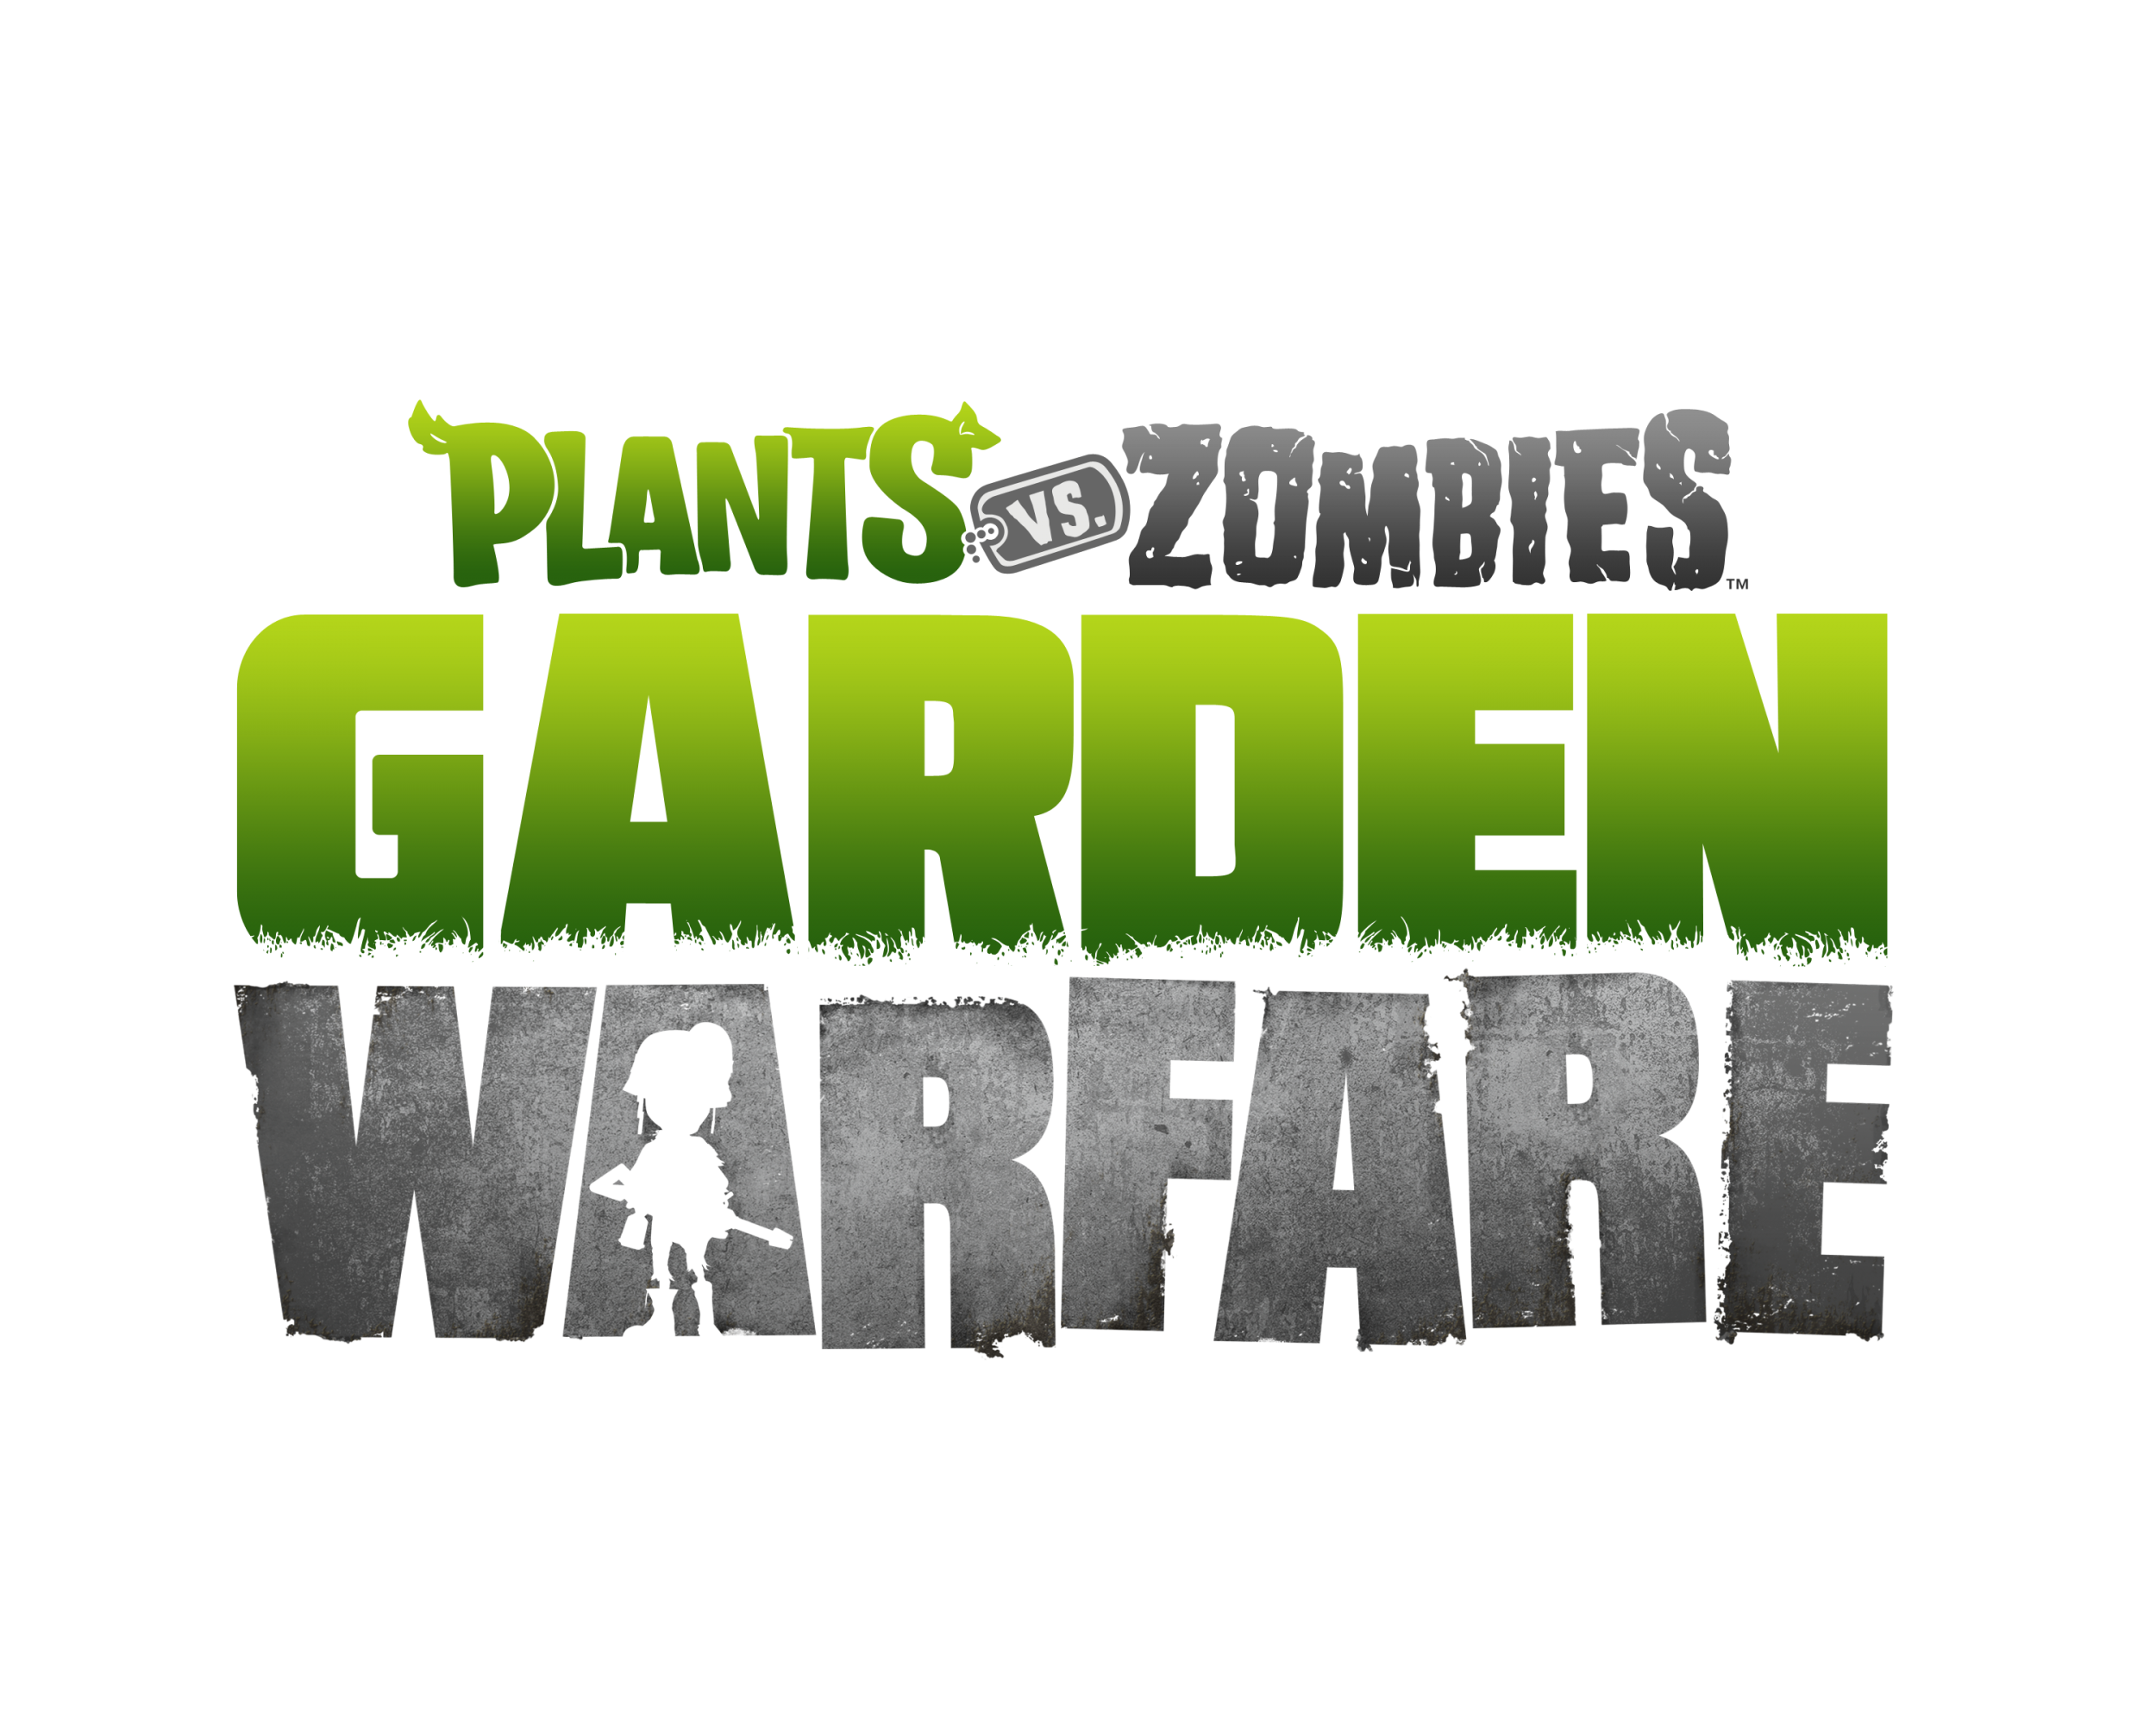 Download plants vs zombies free png photo images and clipart plants vs zombies garden warfare free png image png image toneelgroepblik Image collections